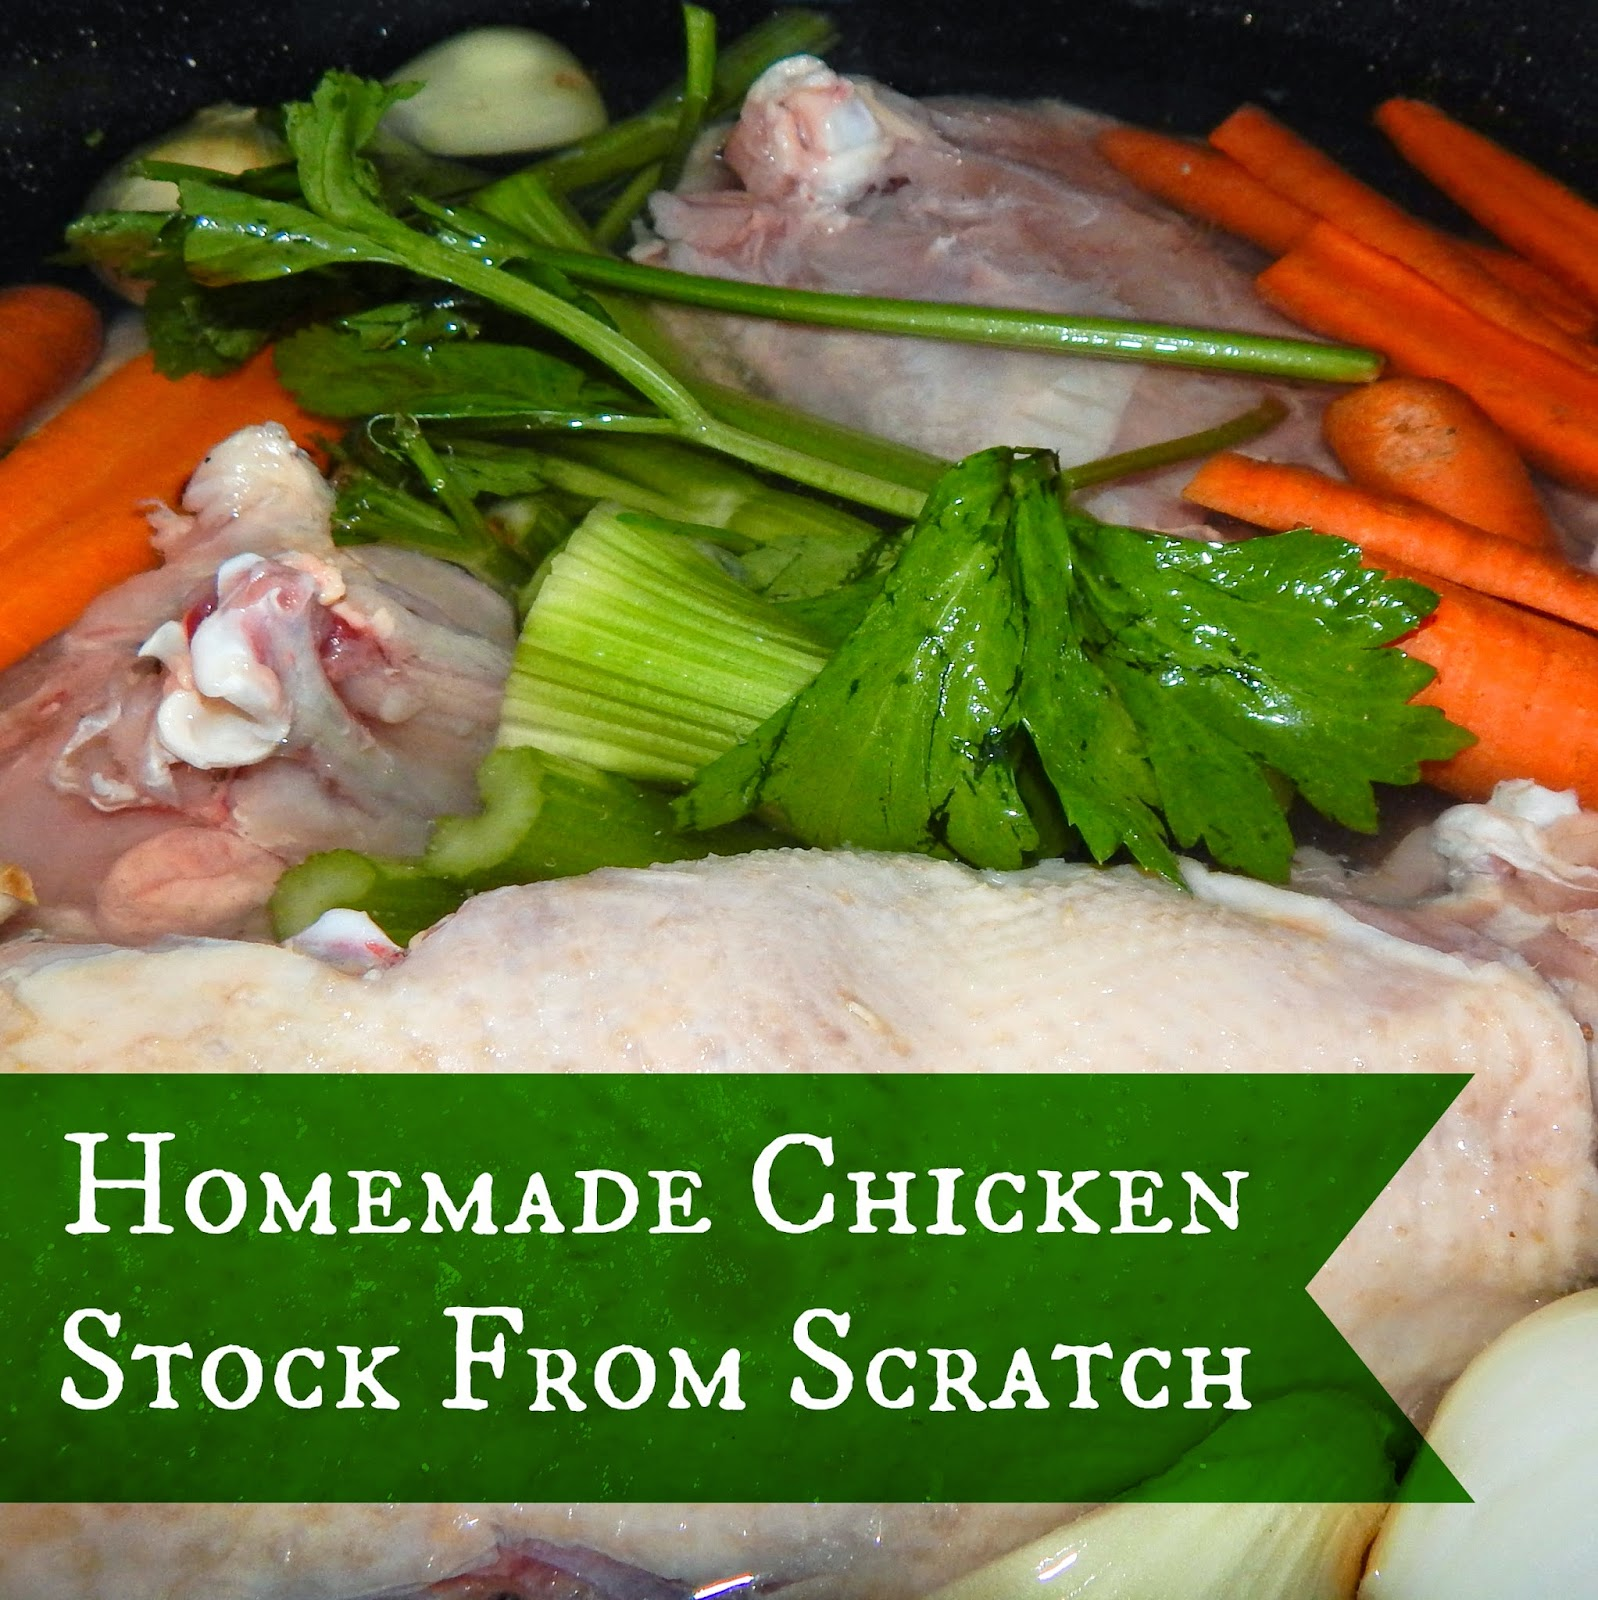 Homemade Chicken Stock From Scratch